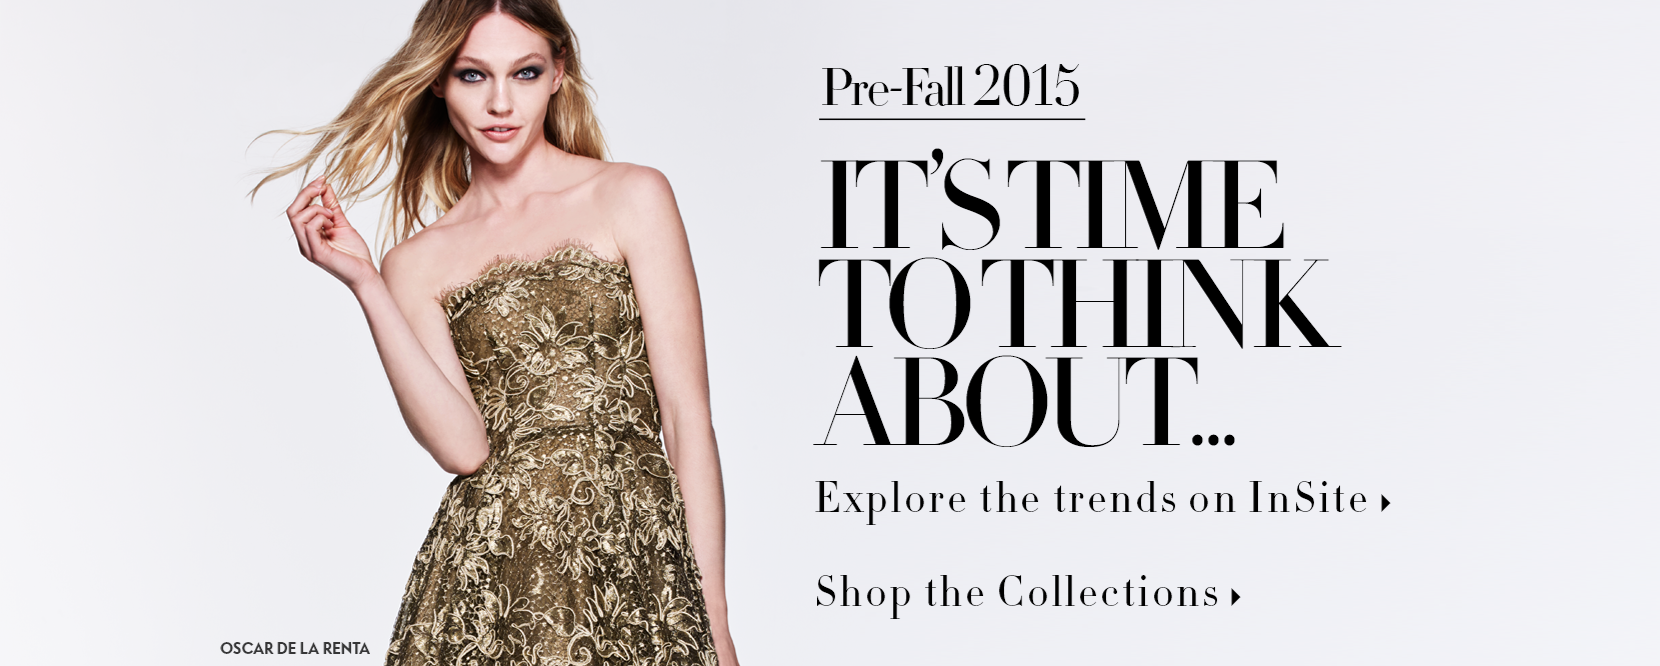 Pre-Fall Launch 2015